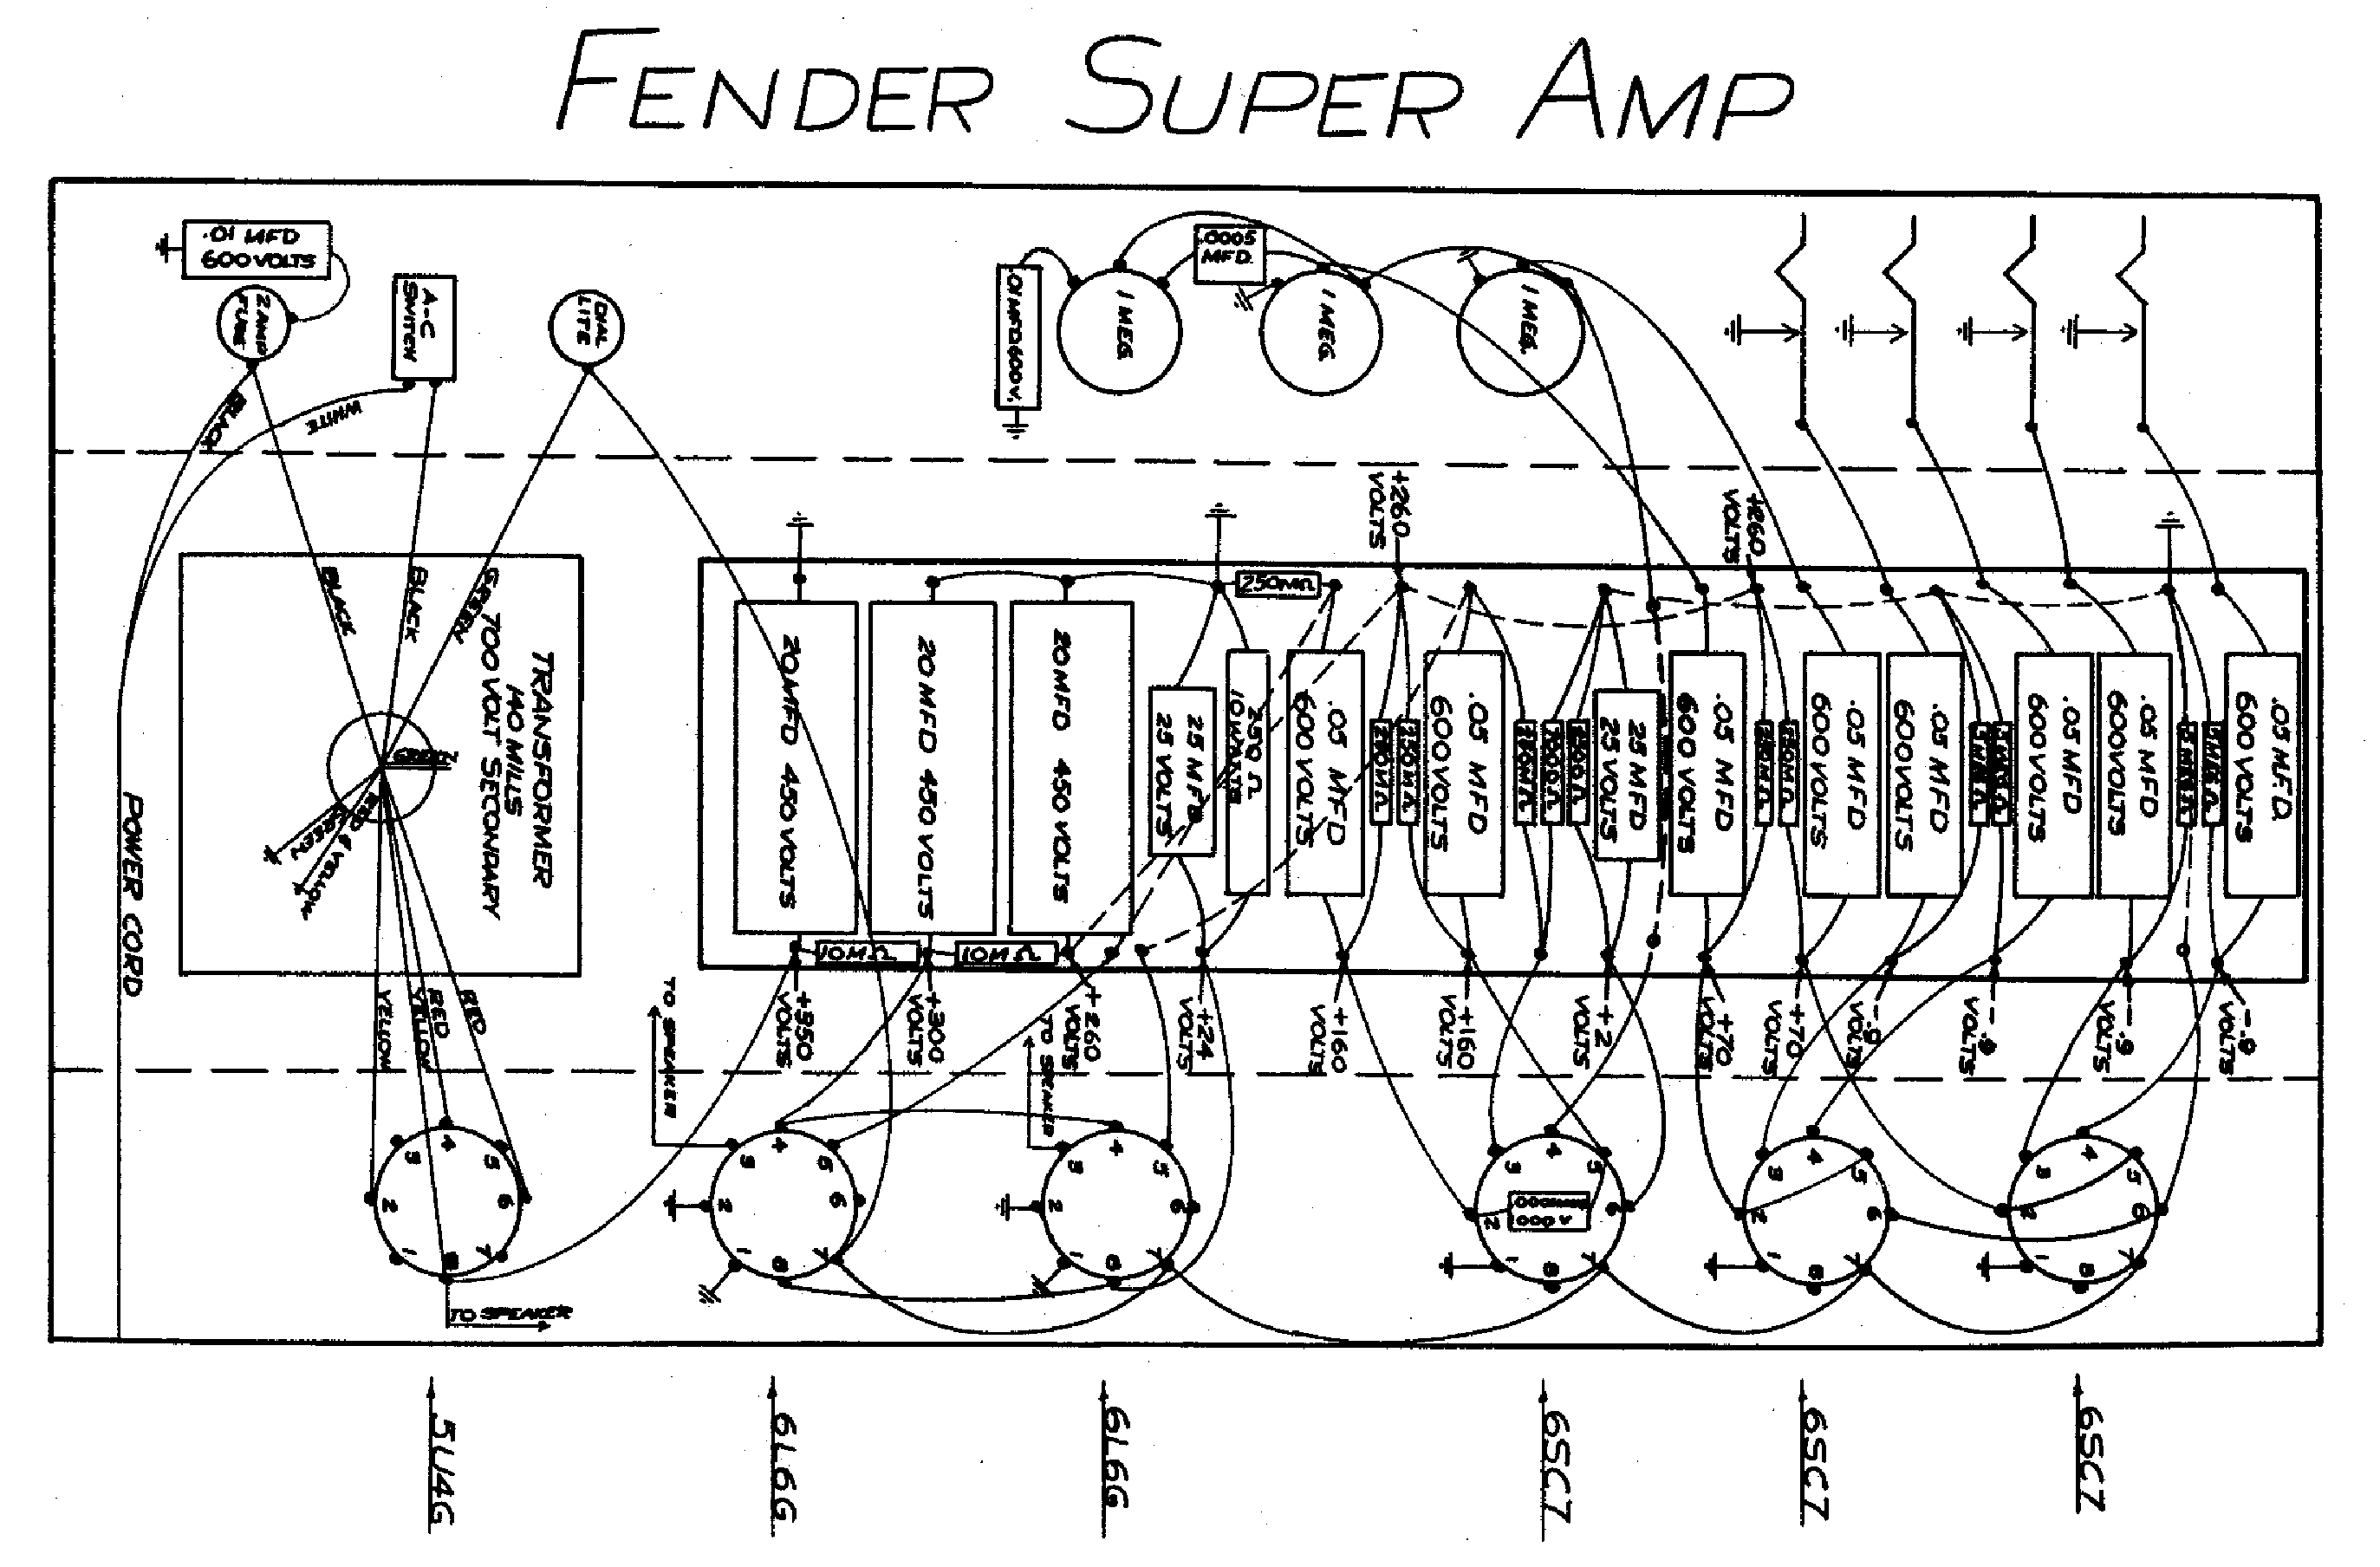 Fender Super Amp 5b4 Layout Service Manual Download